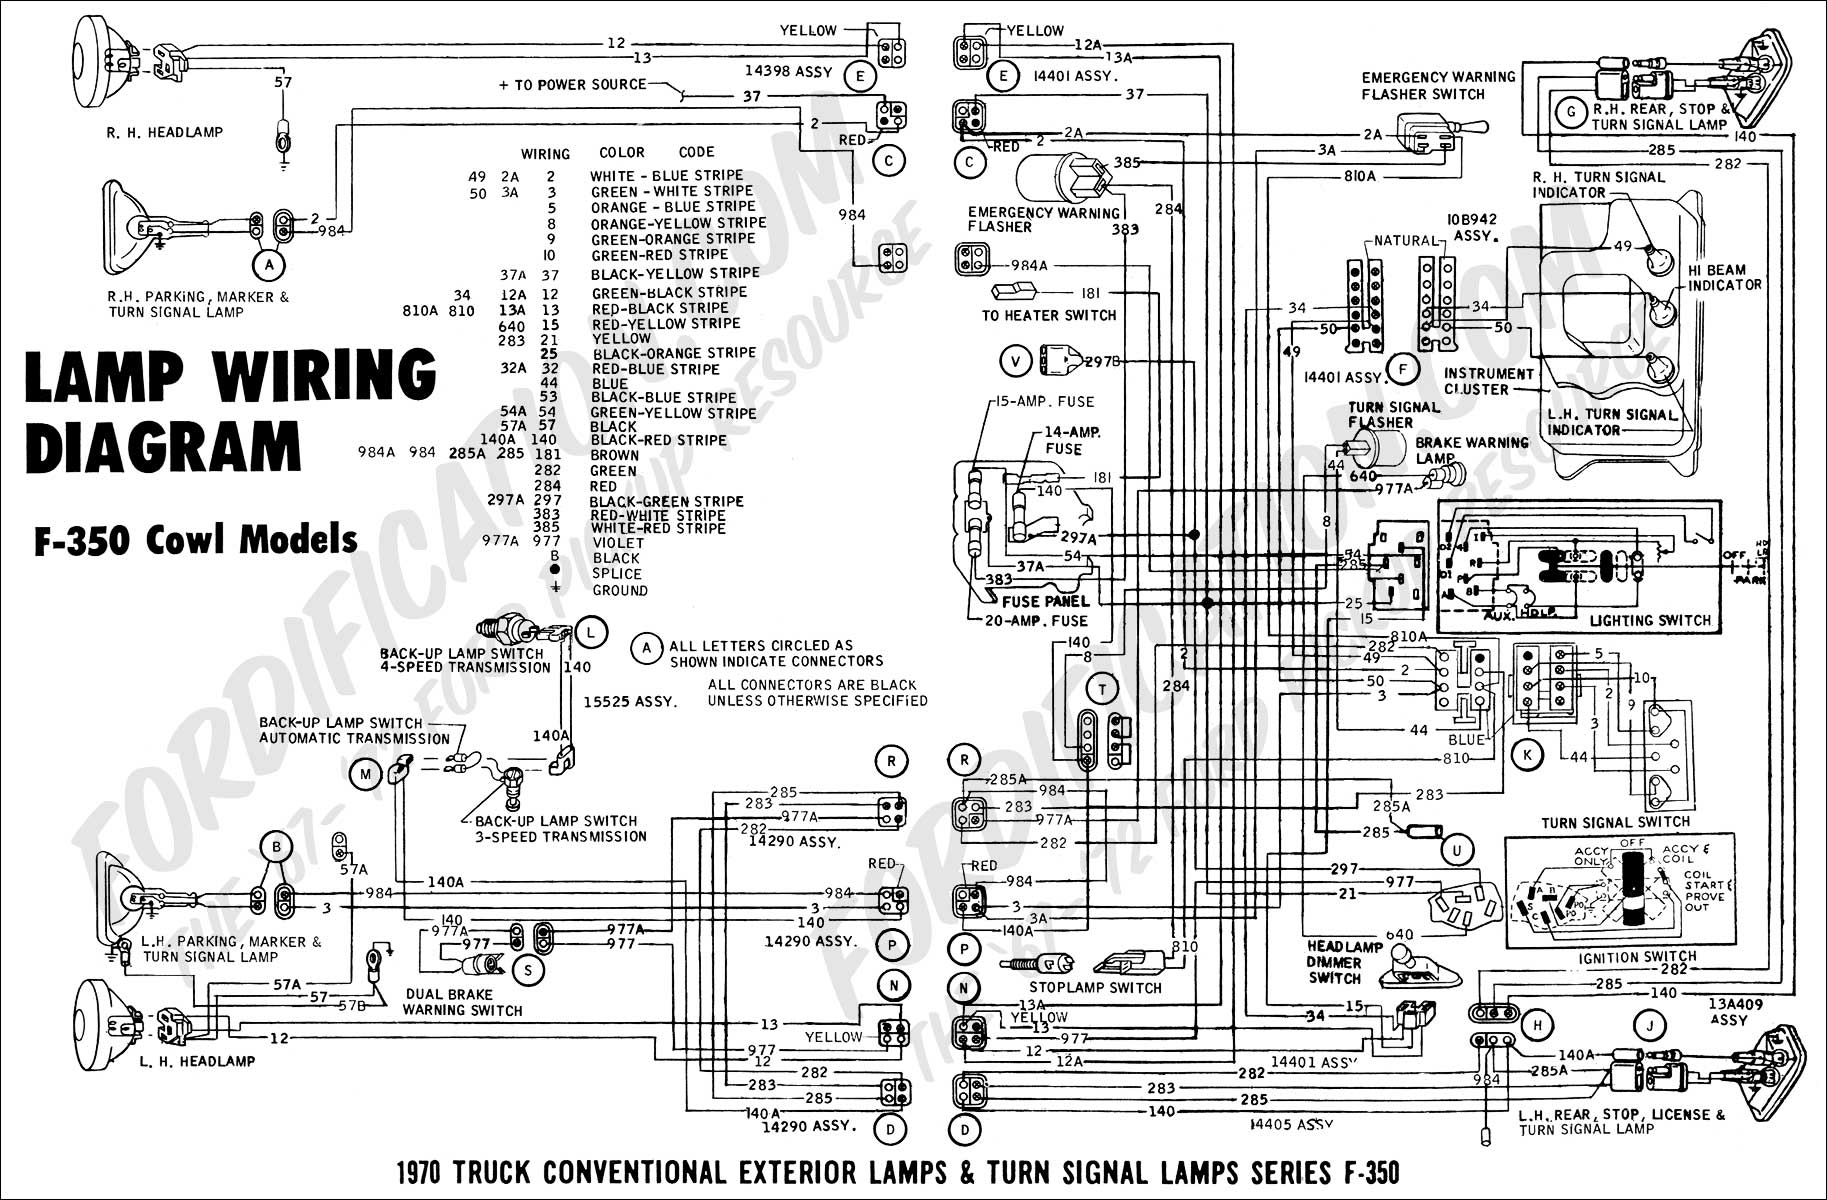 hight resolution of 1970 f 350 cowl models lamp wiring 01